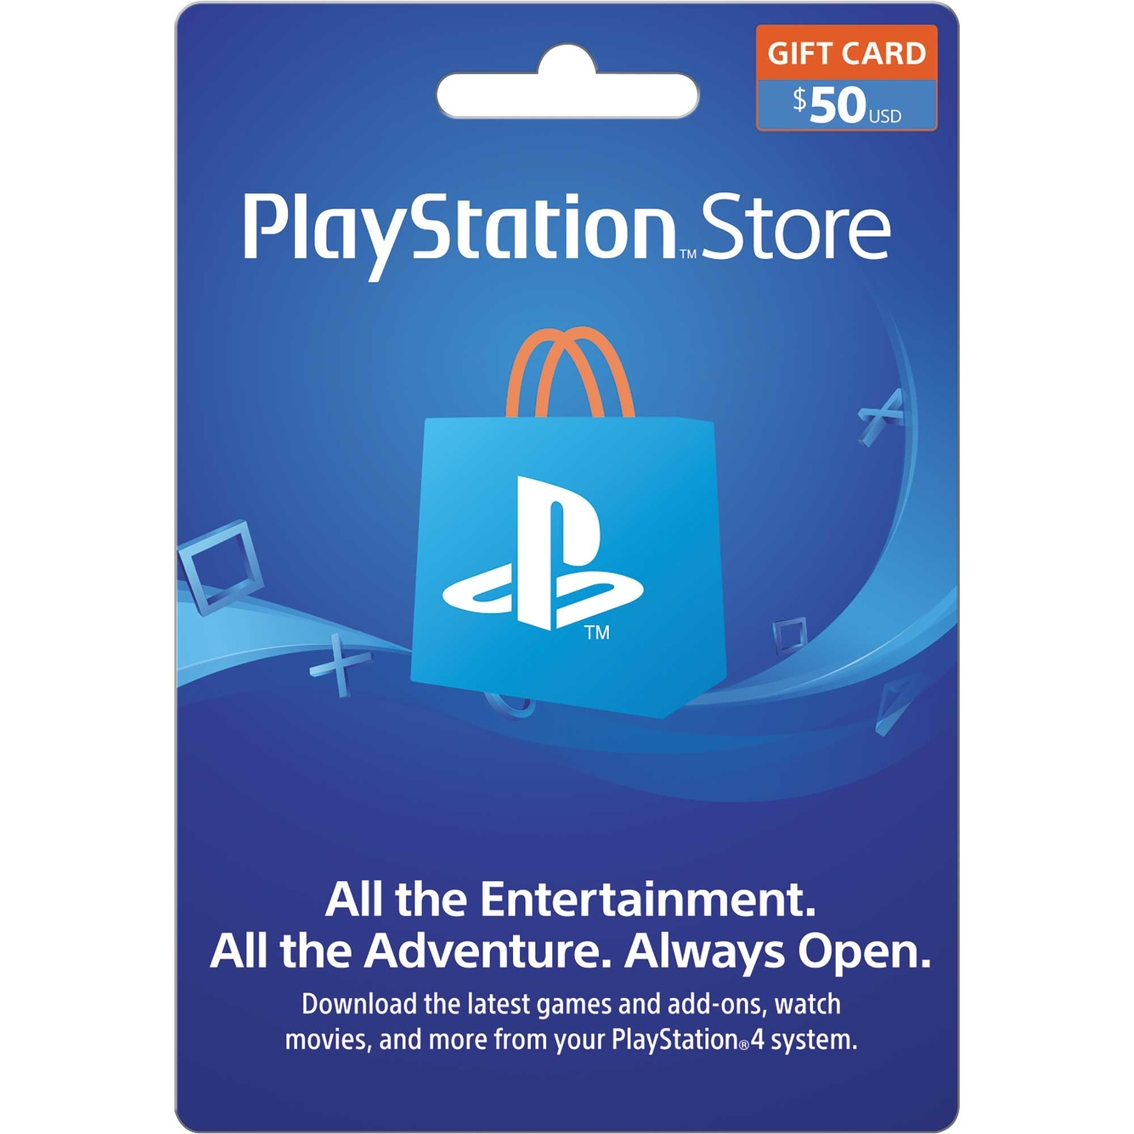 Sony Playstation Store Gift Card $50.00